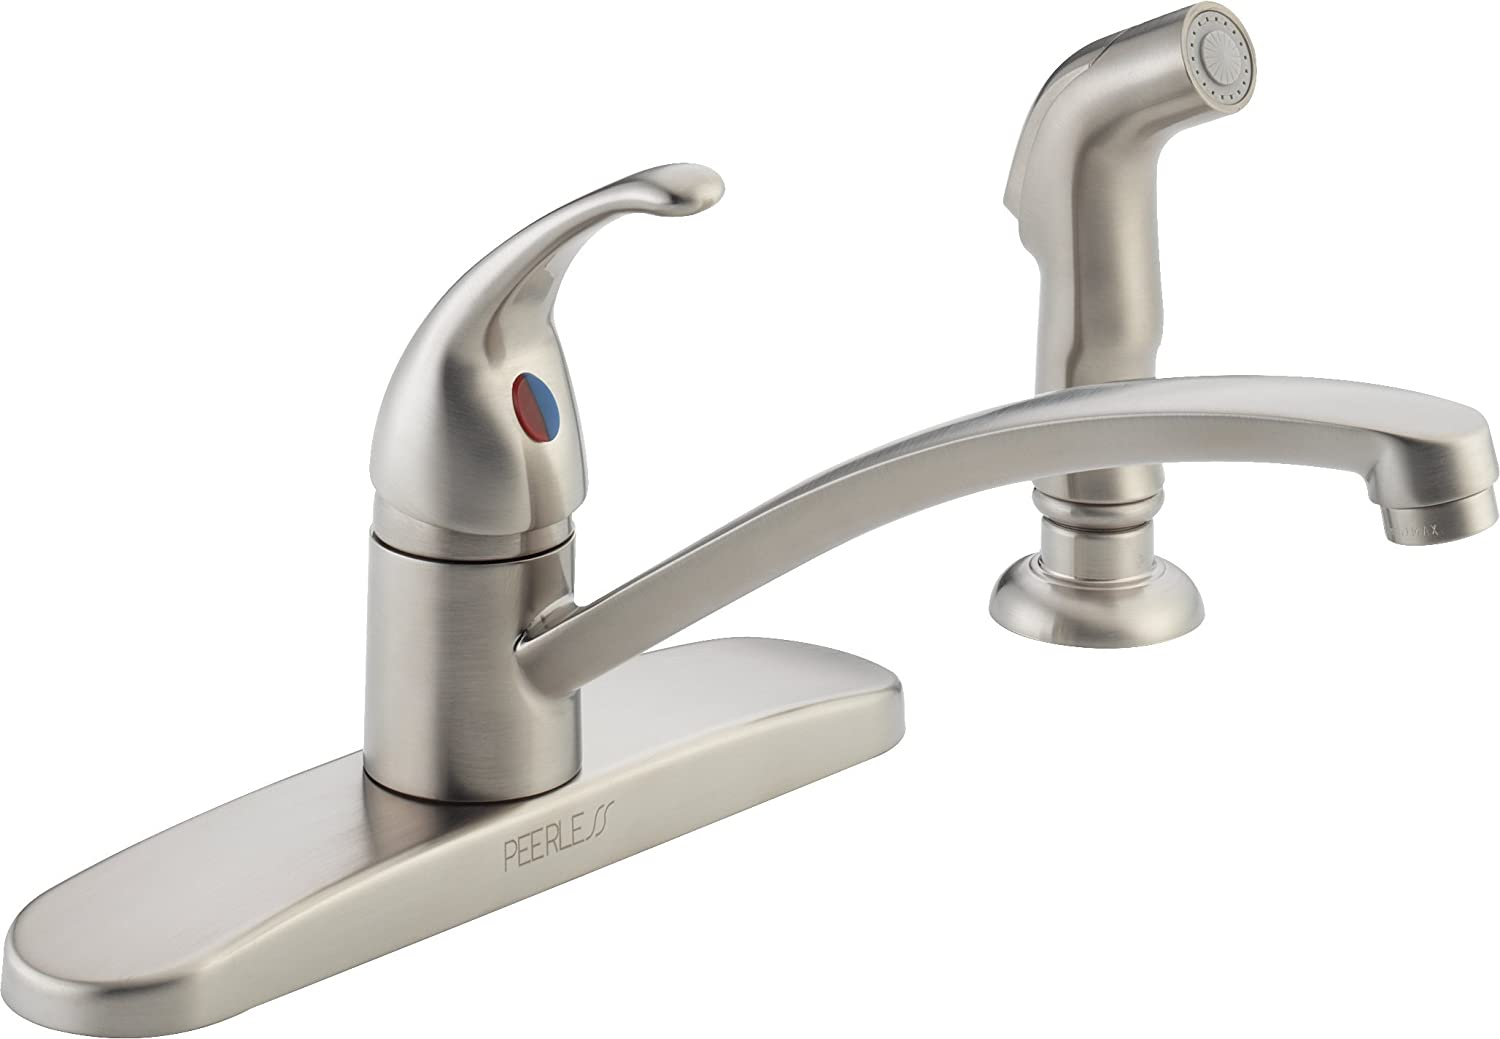 Peerless P188501LF-SS Choice Single Handle Kitchen Faucet with Matching Side Spray, Stainless